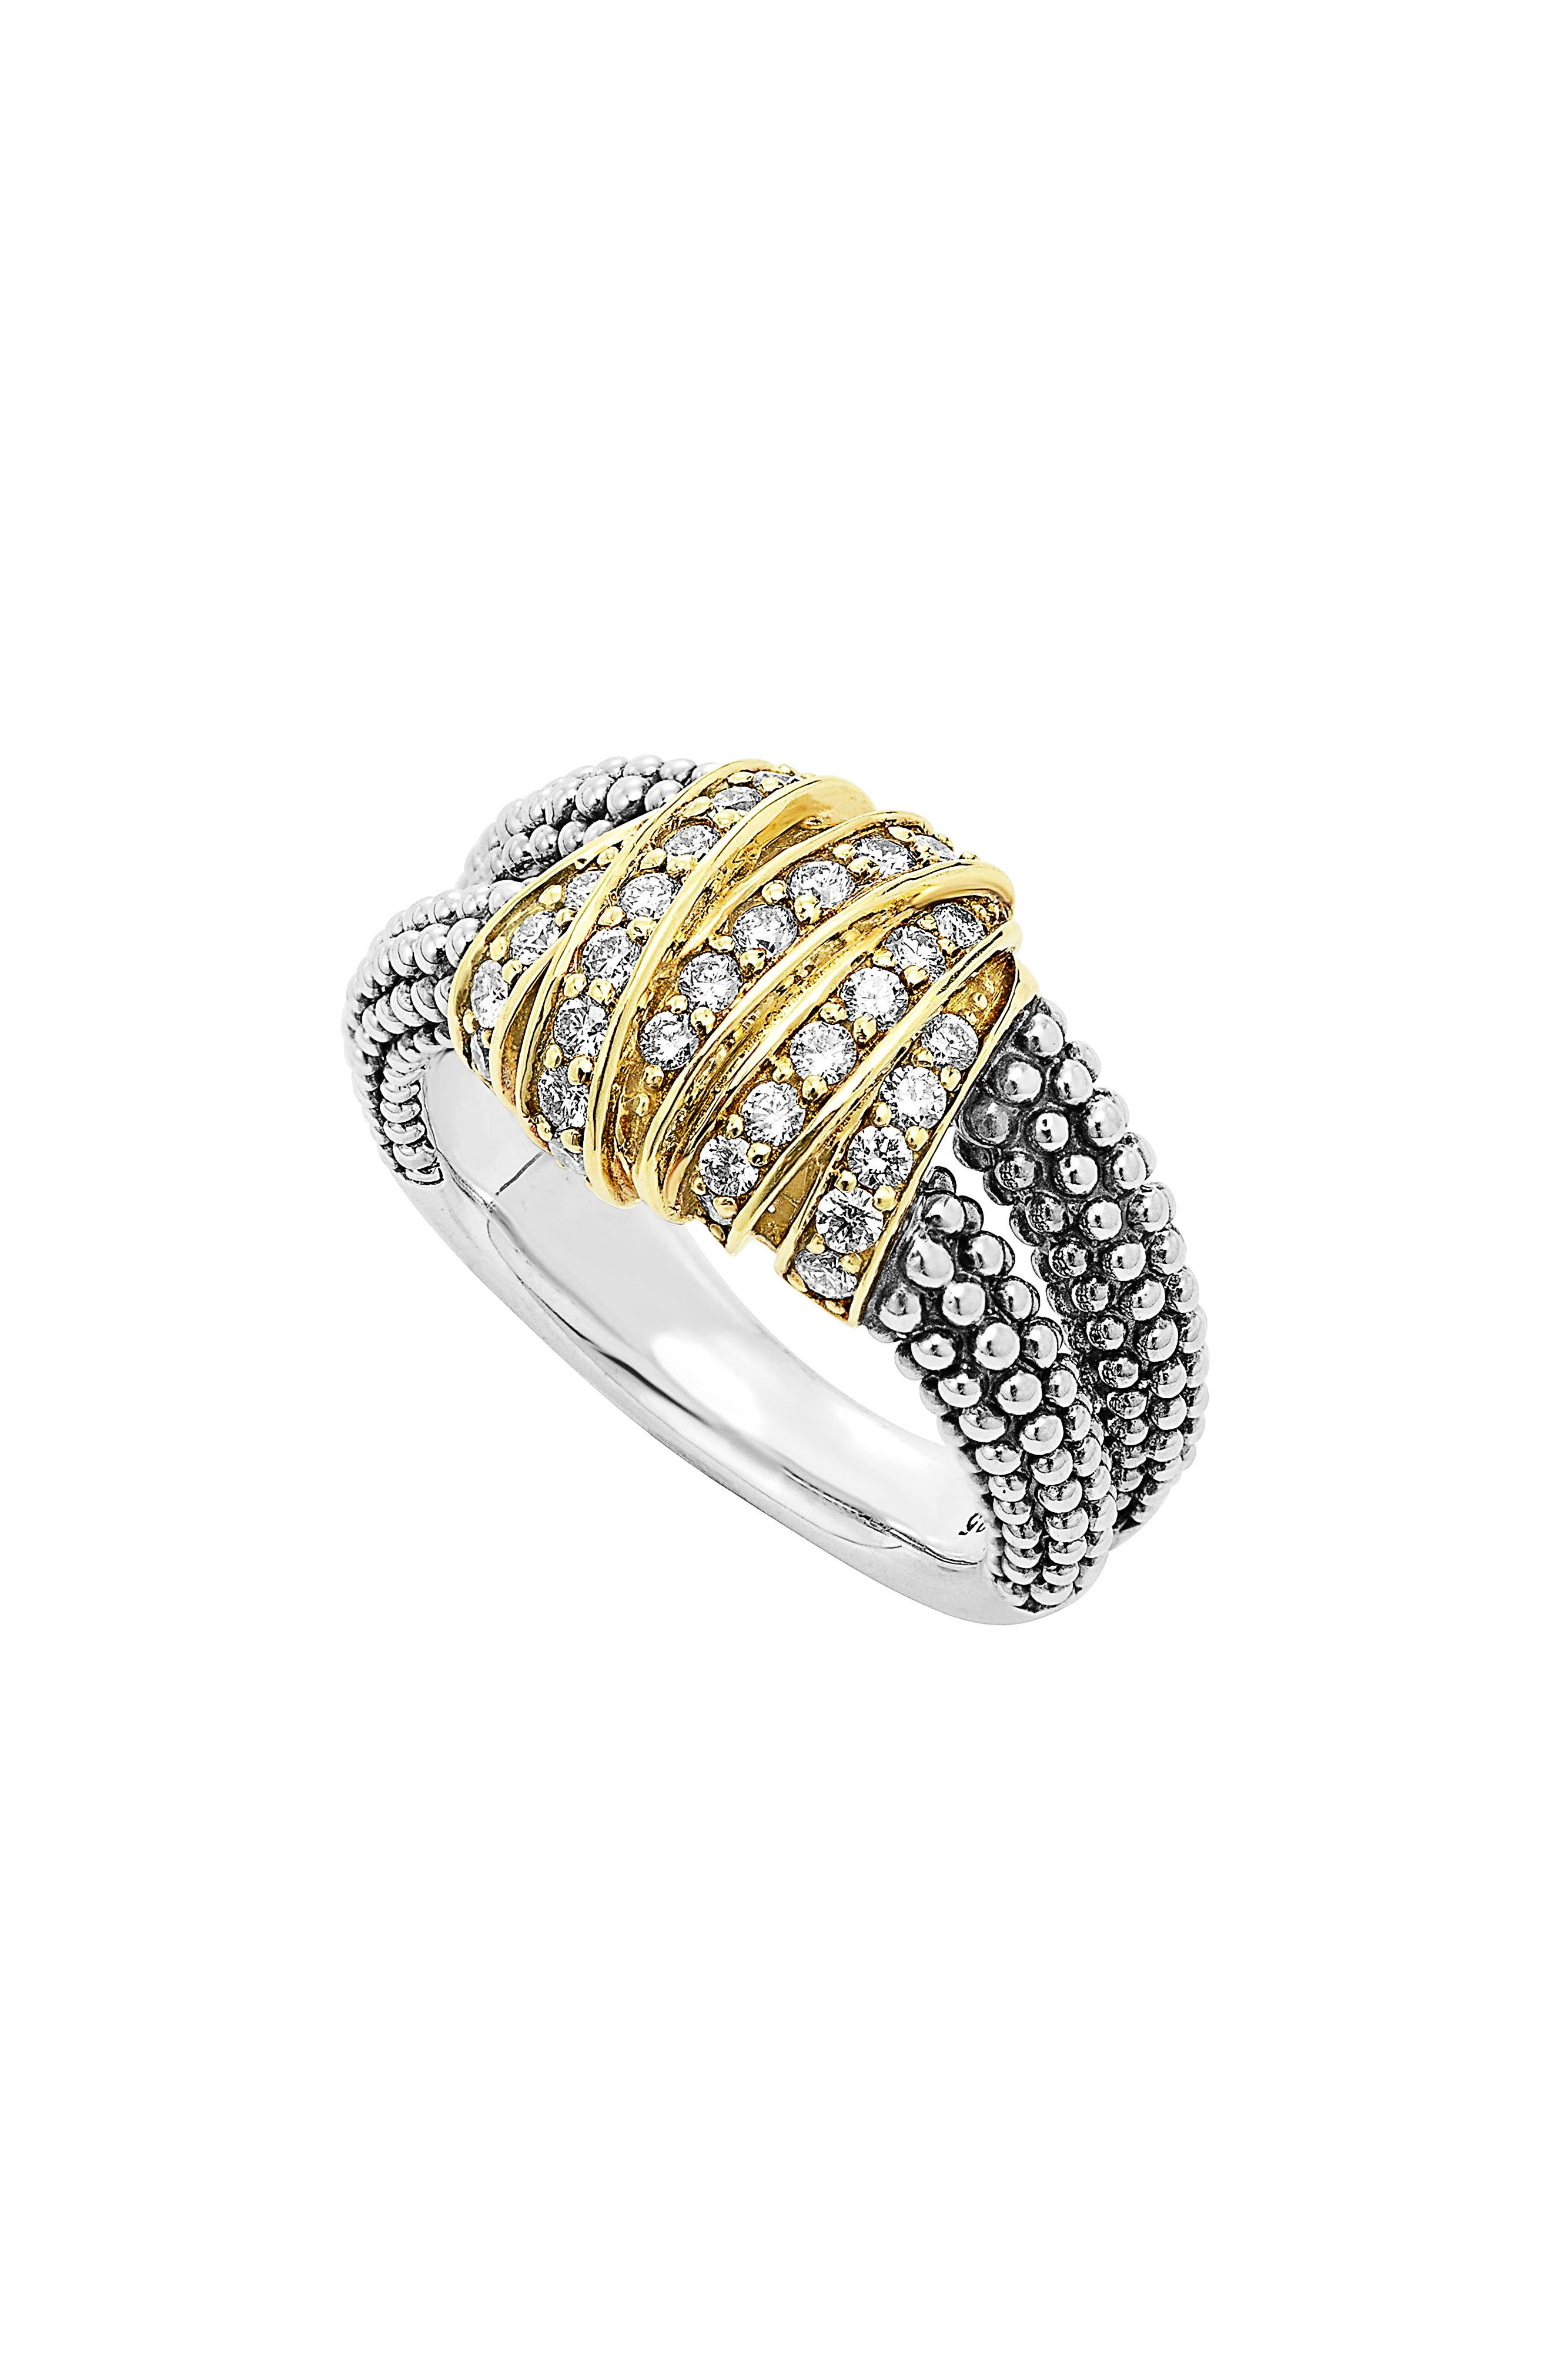 'DIAMONDS & CAVIAR' MEDIUM DIAMOND RING